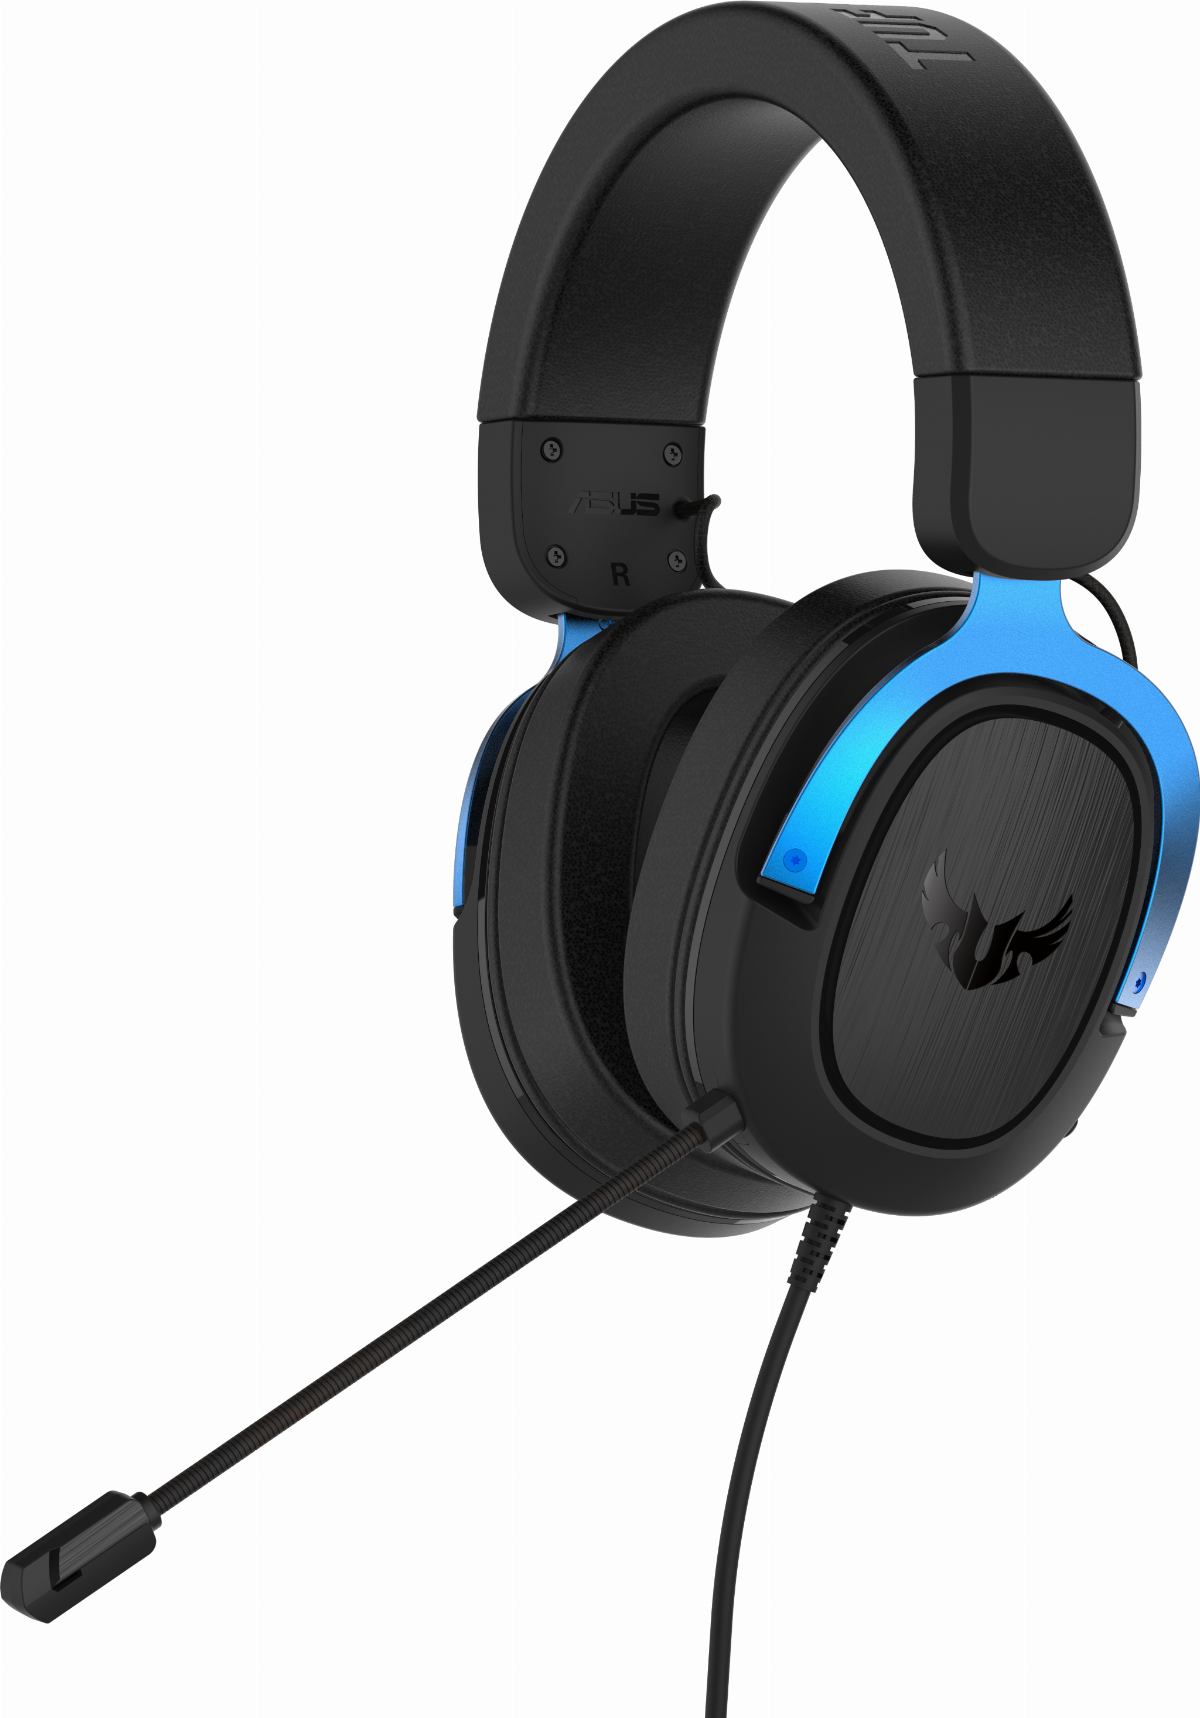 Геймърски слушалки ASUS TUF Gaming H3 Blue, 7.1 Virtual Surround Sound